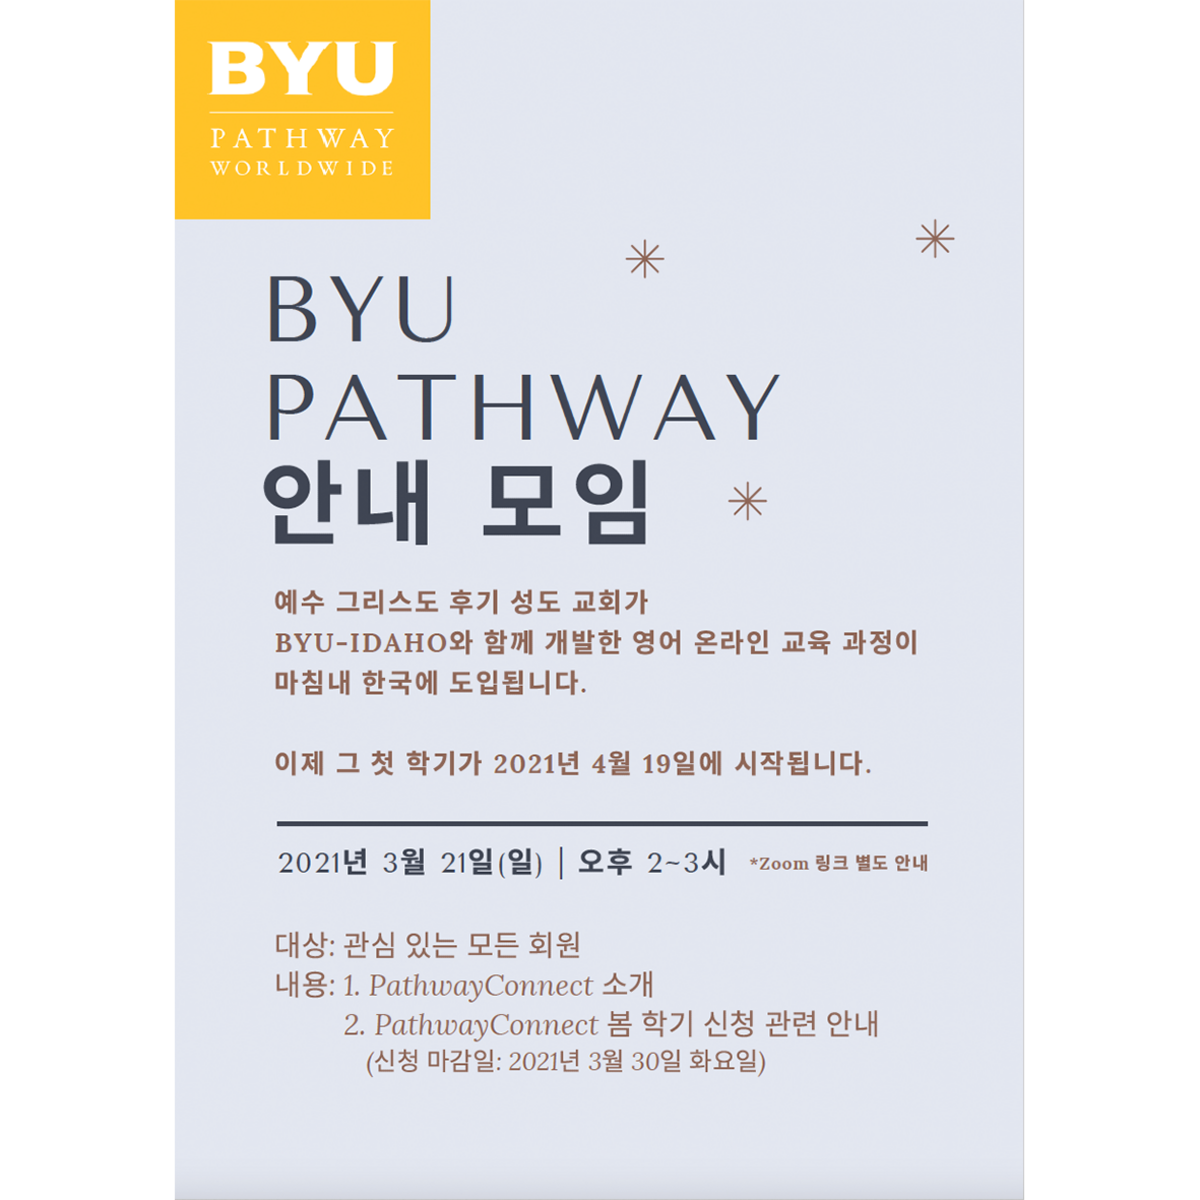 BYU-PathwayConnect 안내 모임